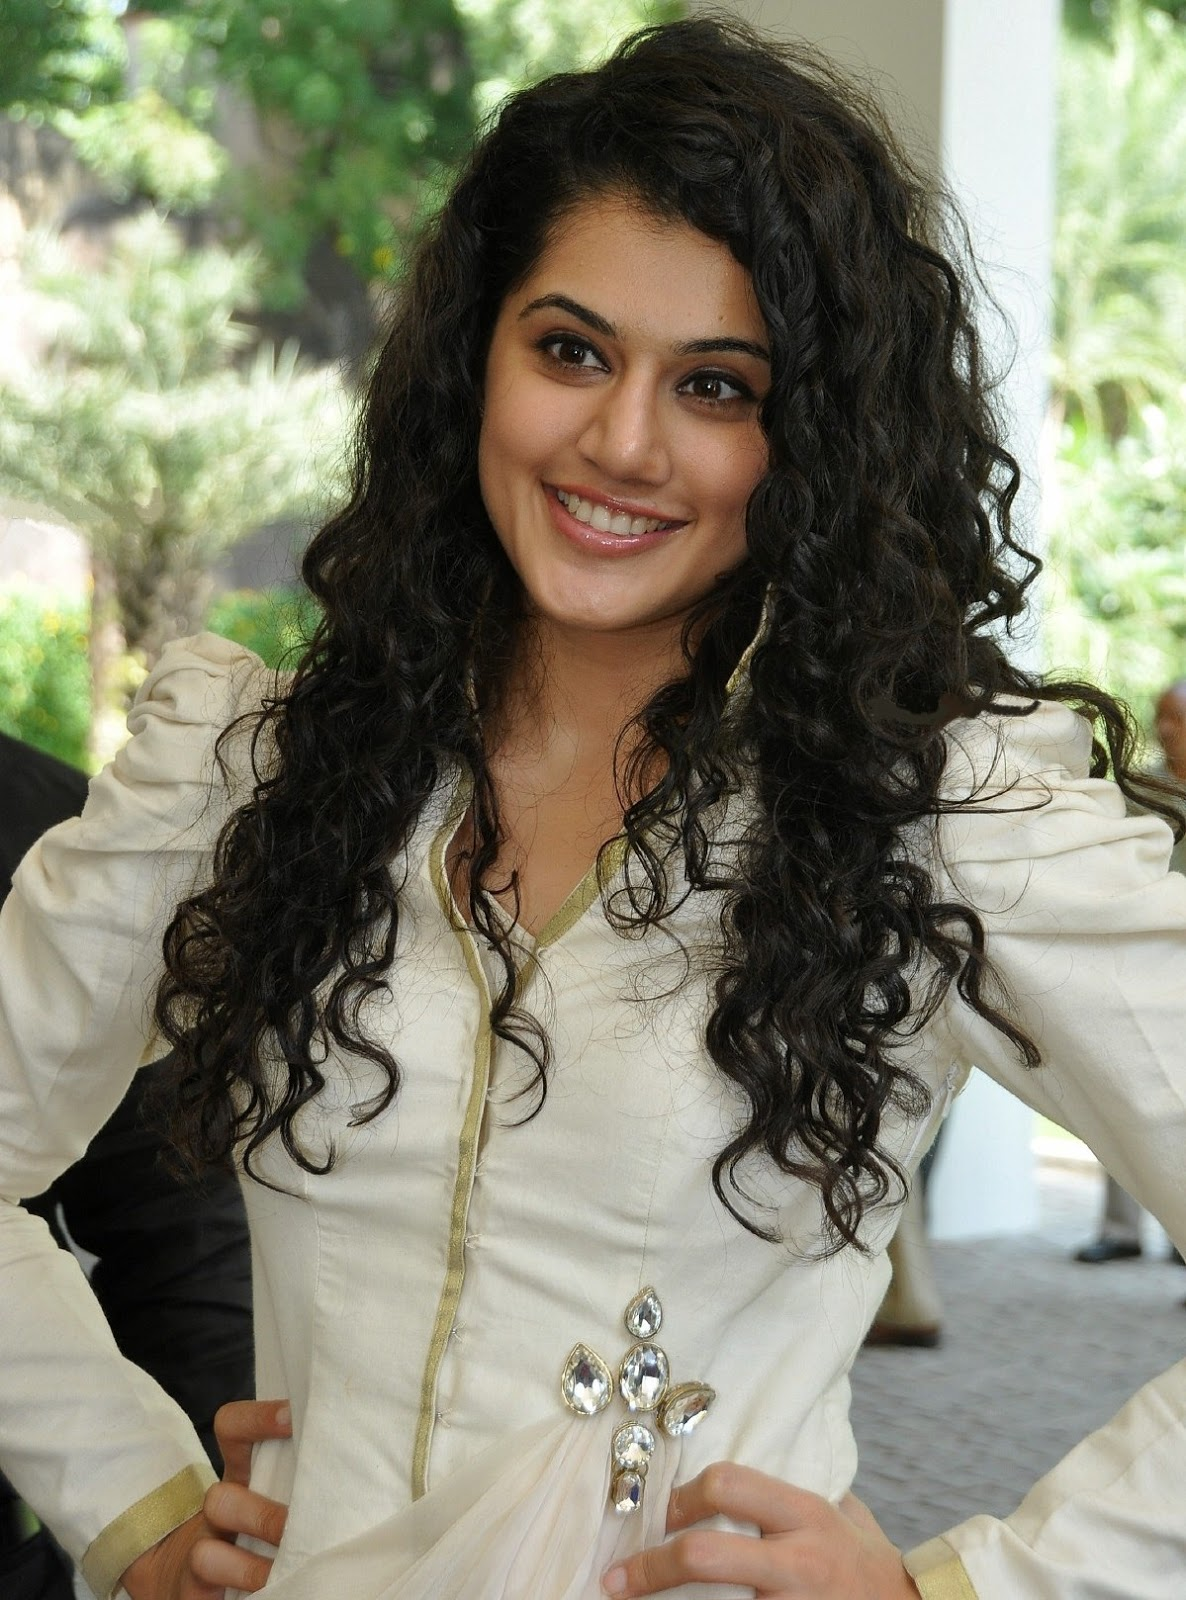 Glamorous Taapsee Pannu Smiling Face Photos In White Dress